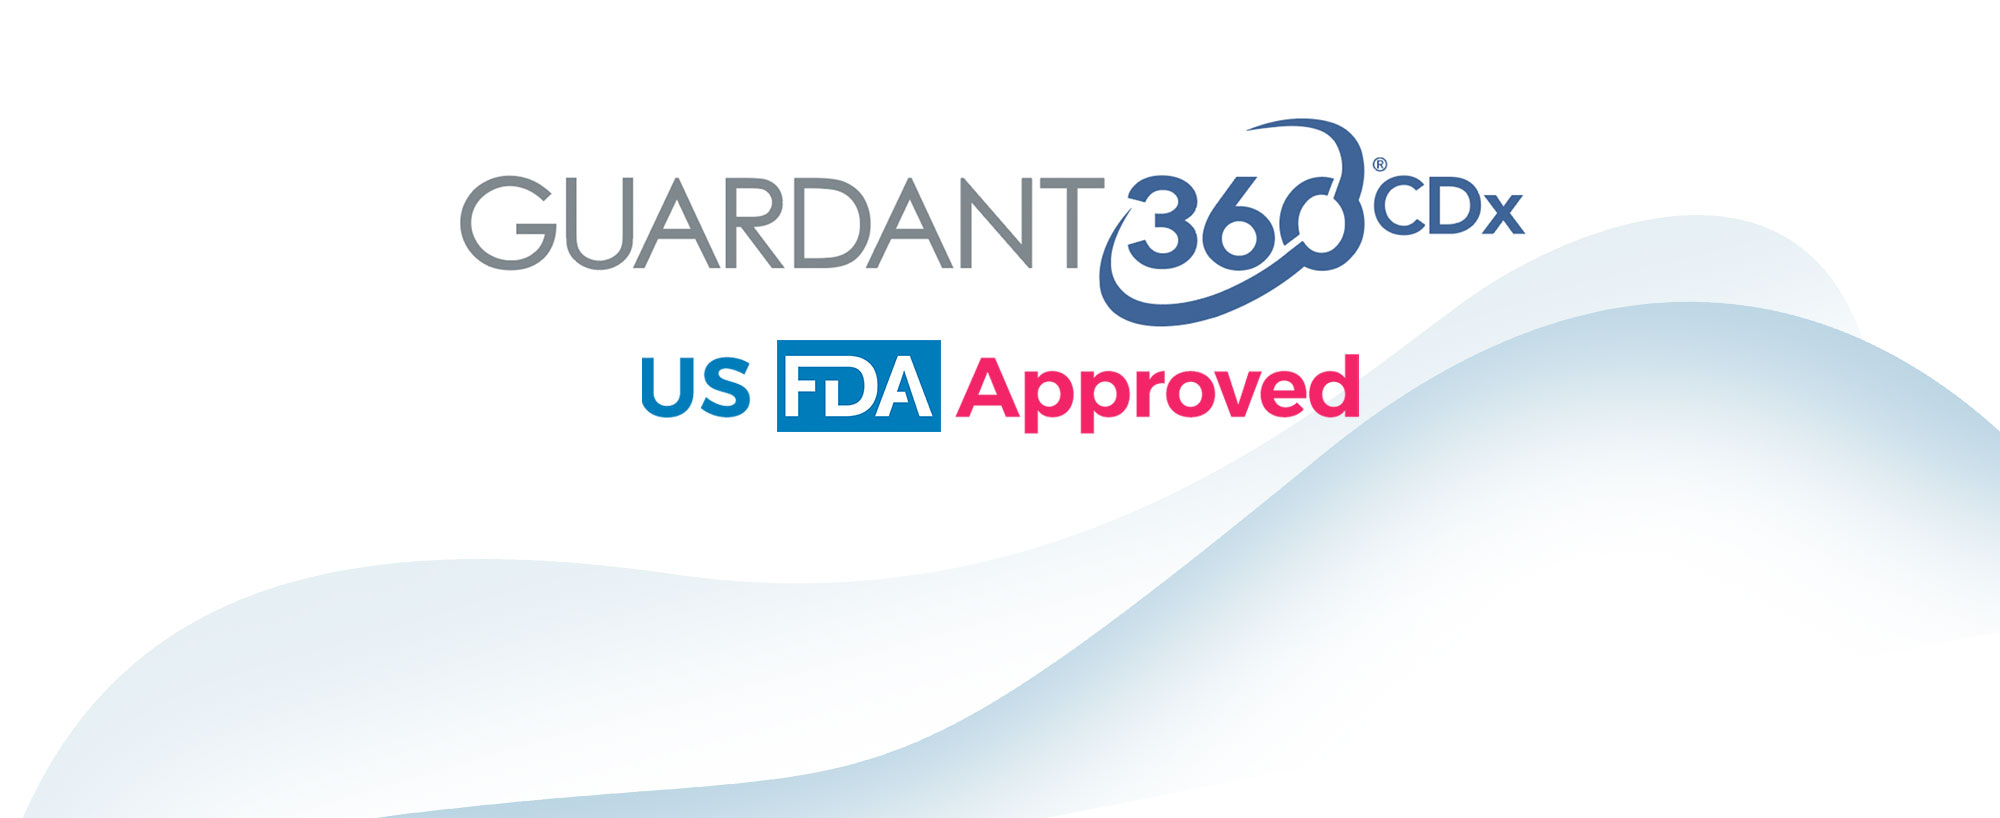 Guardant 360 FDA approved